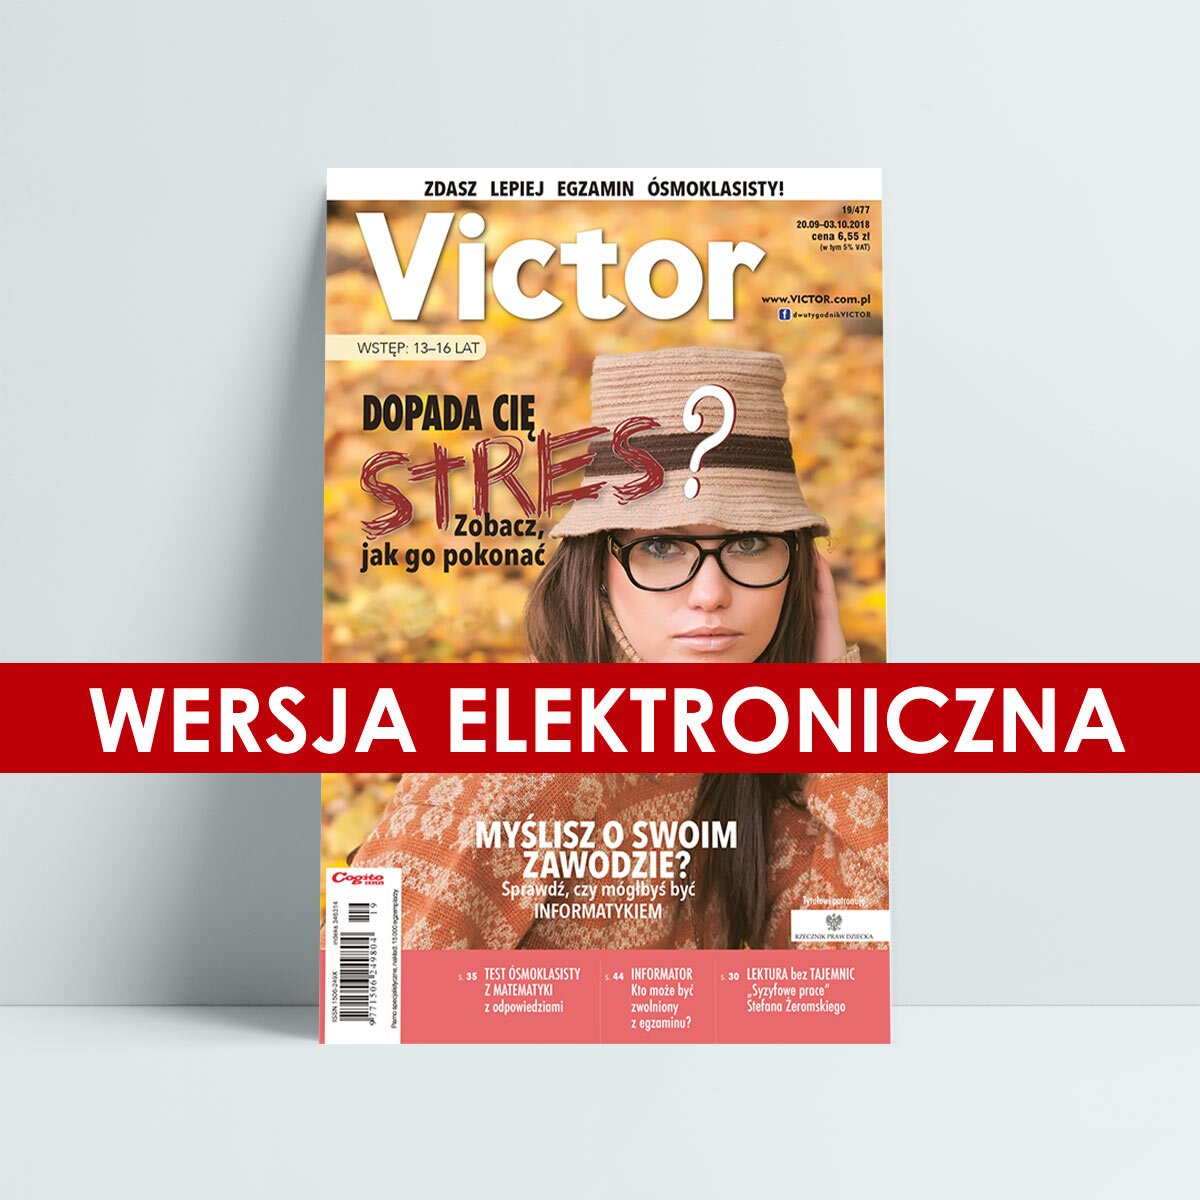 victor19 2018 product image